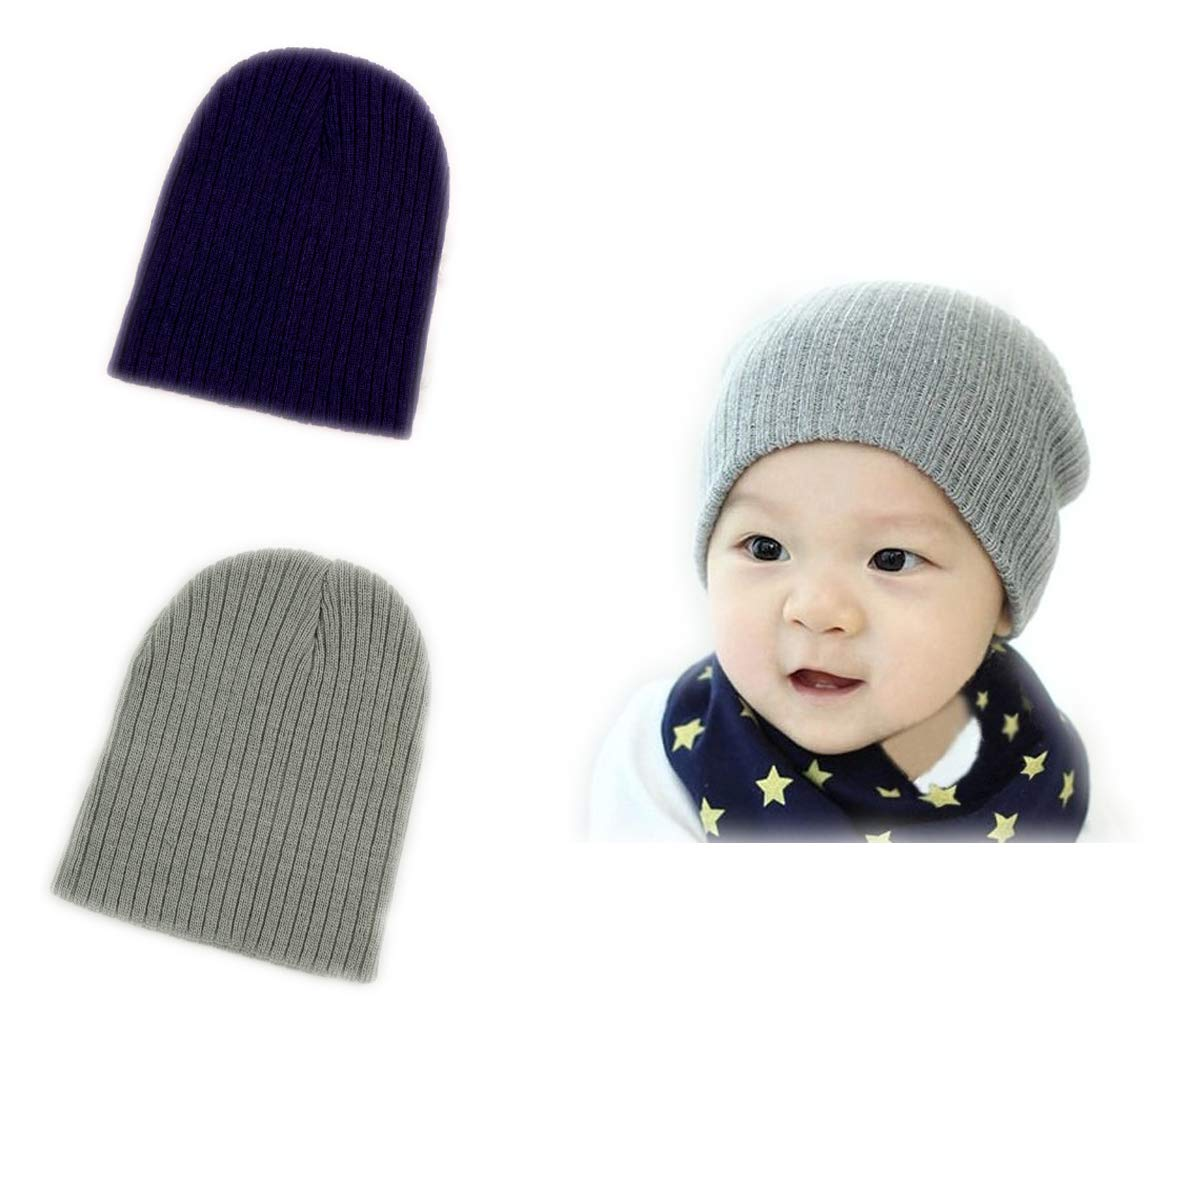 BOMPOW Baby Hat Infant Cute Cotton Knit Hat Beanies Cap for 6 Months to 3 Years